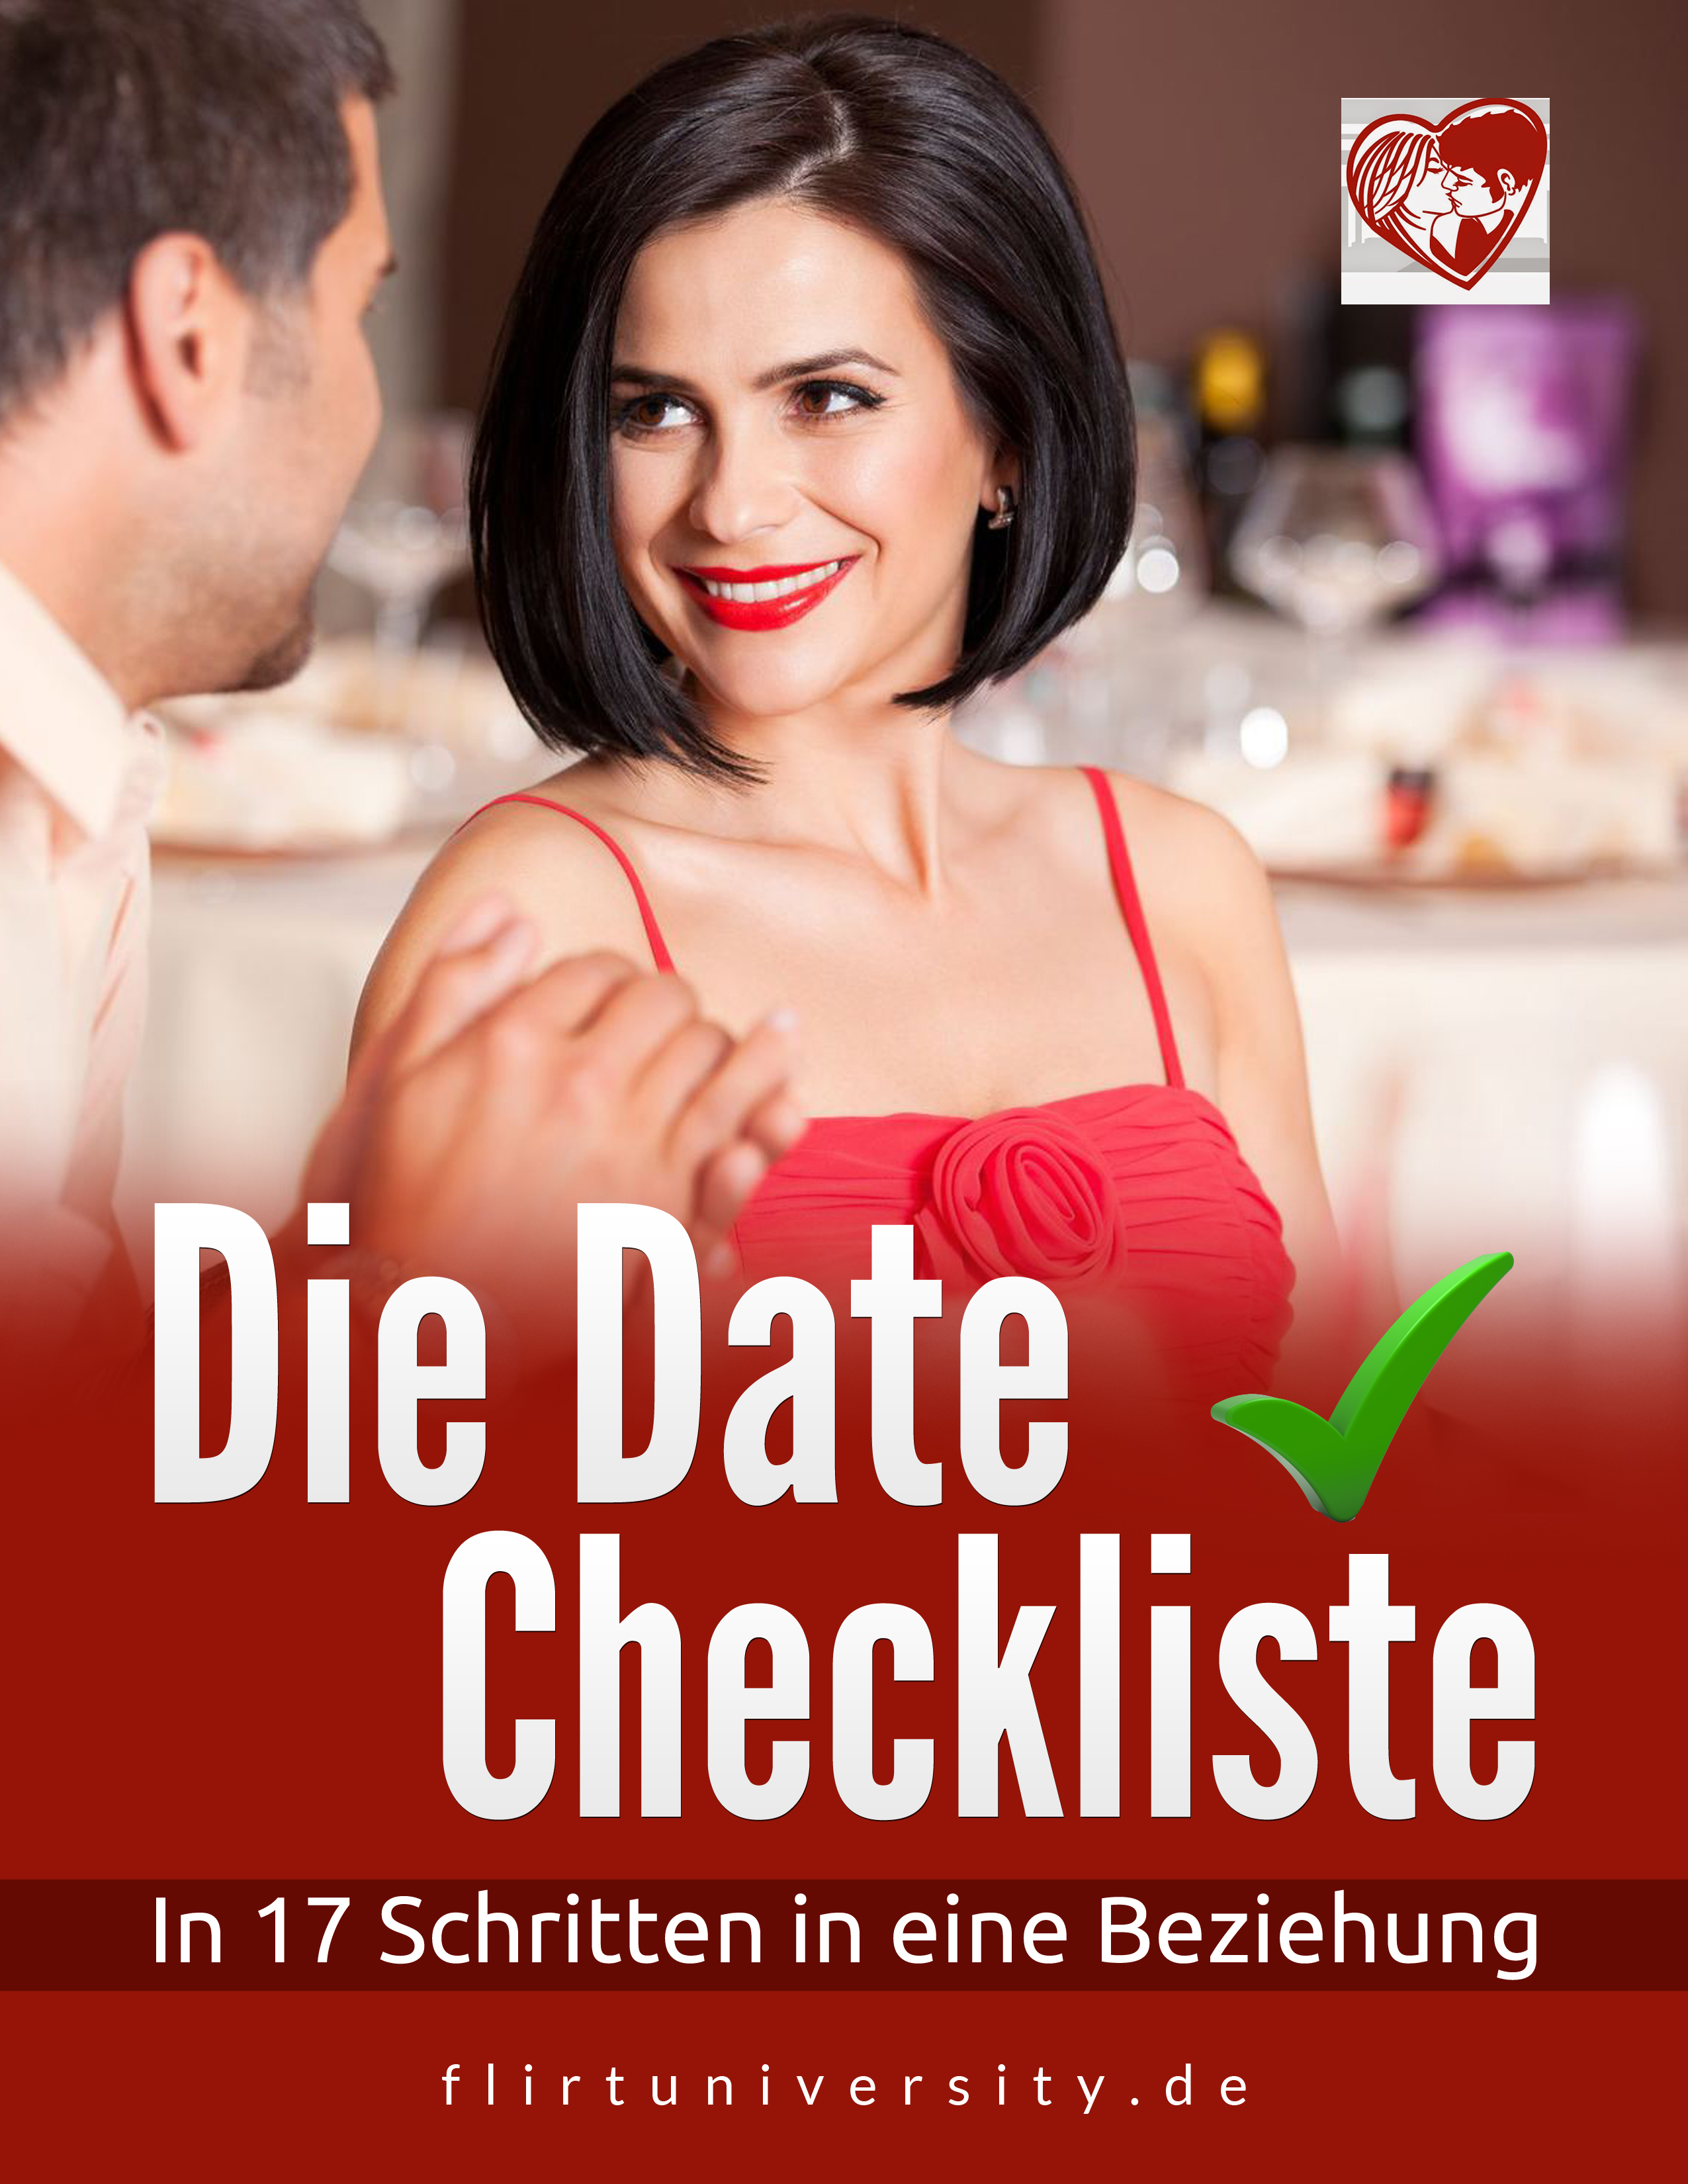 Online dating booster